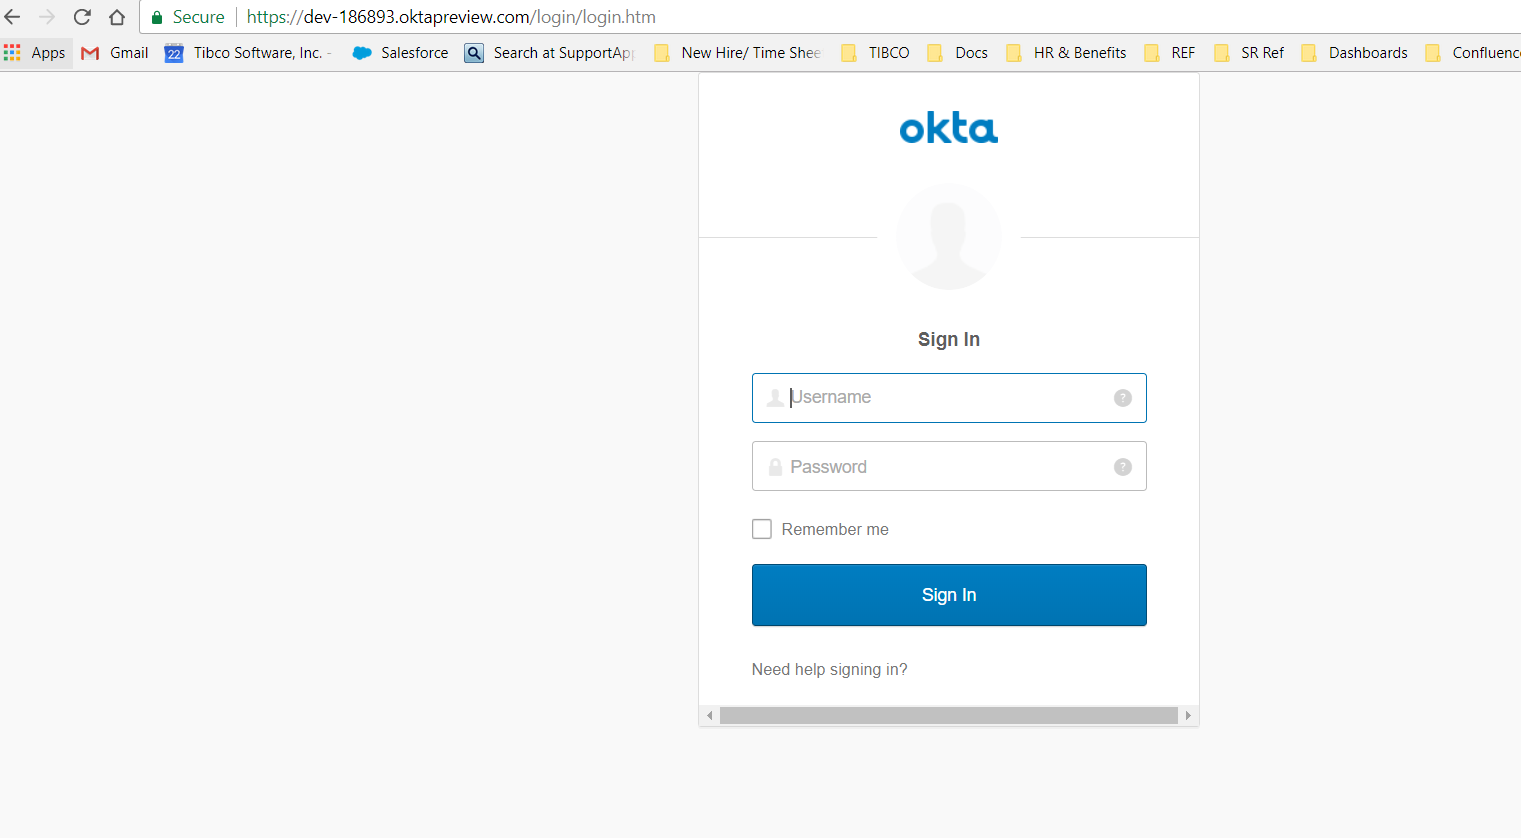 How to configure OpenID connect authentication with Okta on the